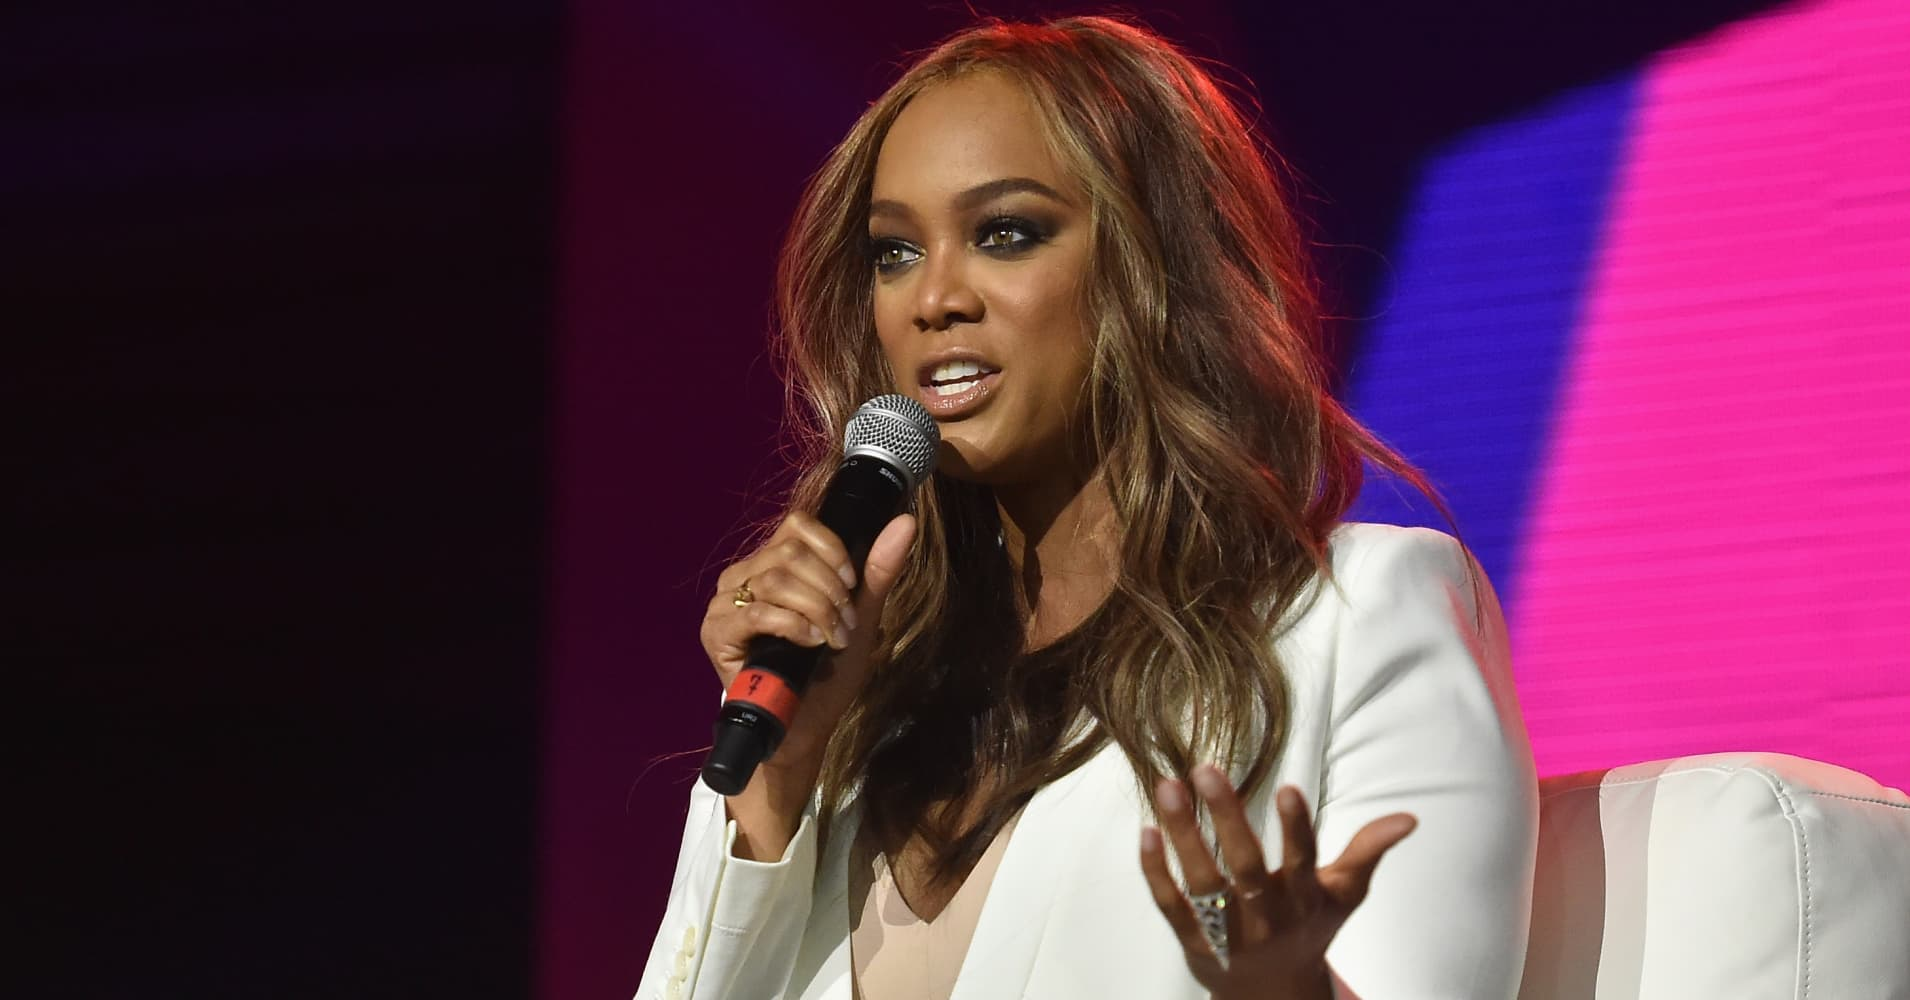 Tyra Banks speaks onstage during the 2016 ESSENCE Festival presented By Coca-Cola at Ernest N. Morial Convention Center on July 2, 2016 in New Orleans, Louisiana.